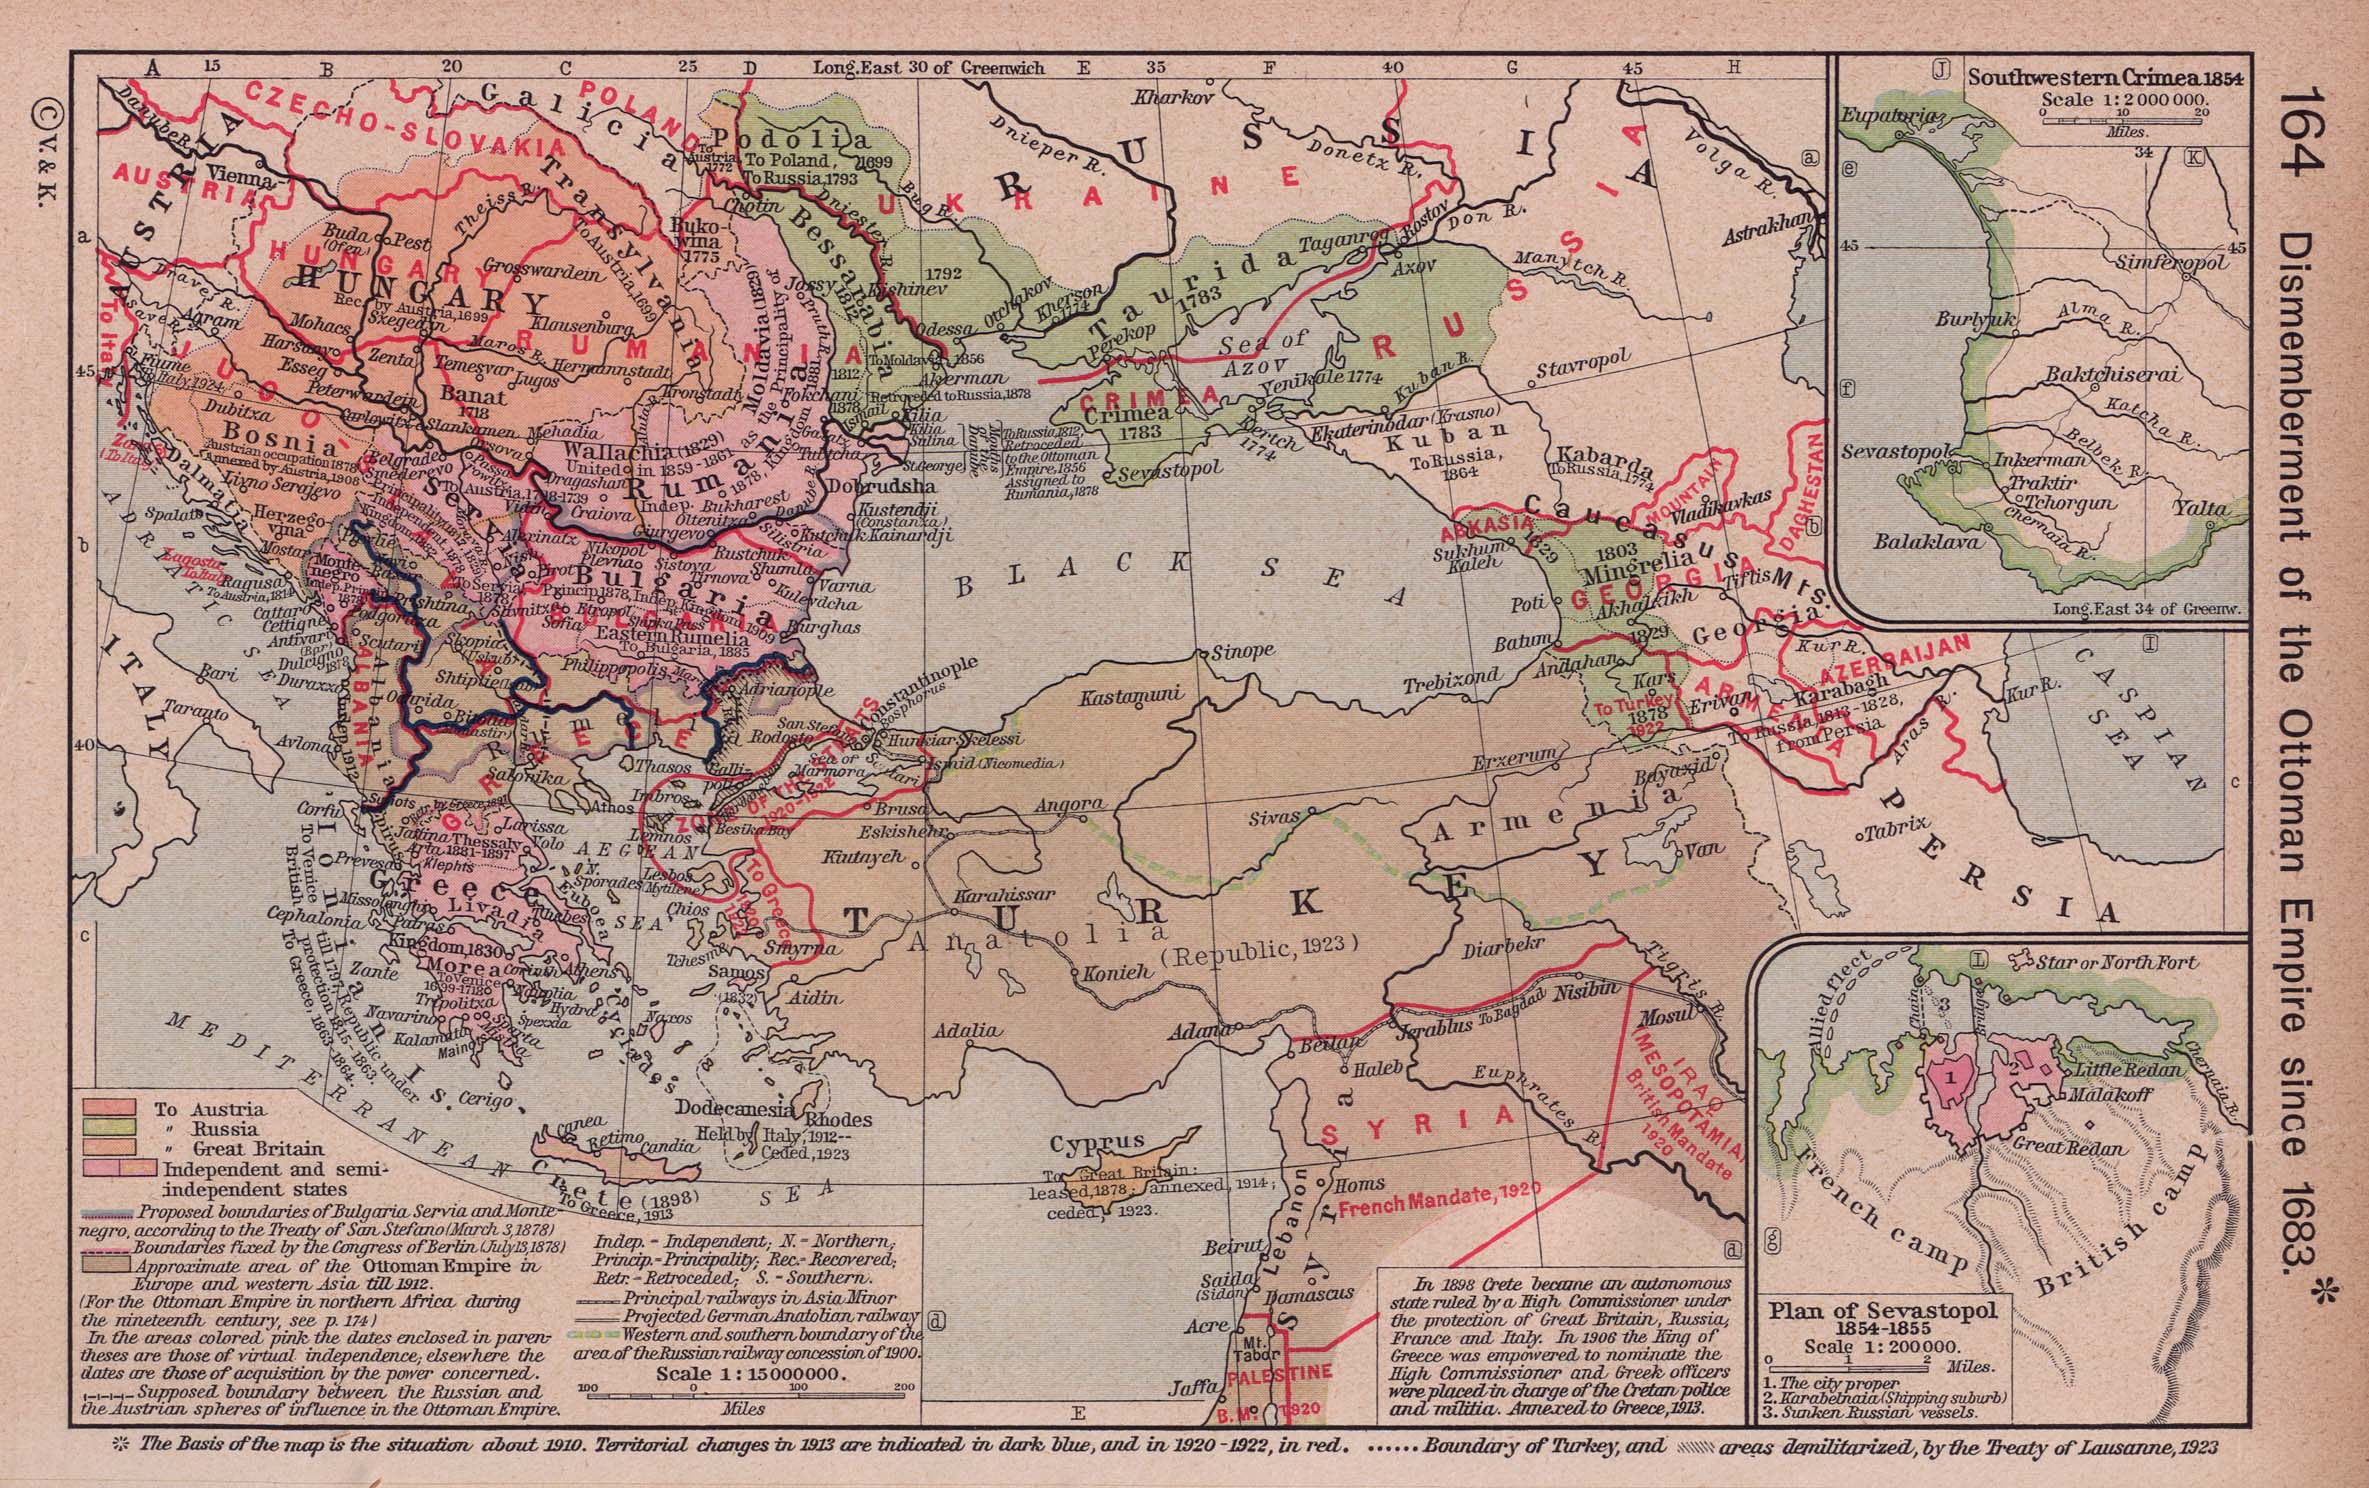 Dismemberment of the Ottoman Empire 1683-1923